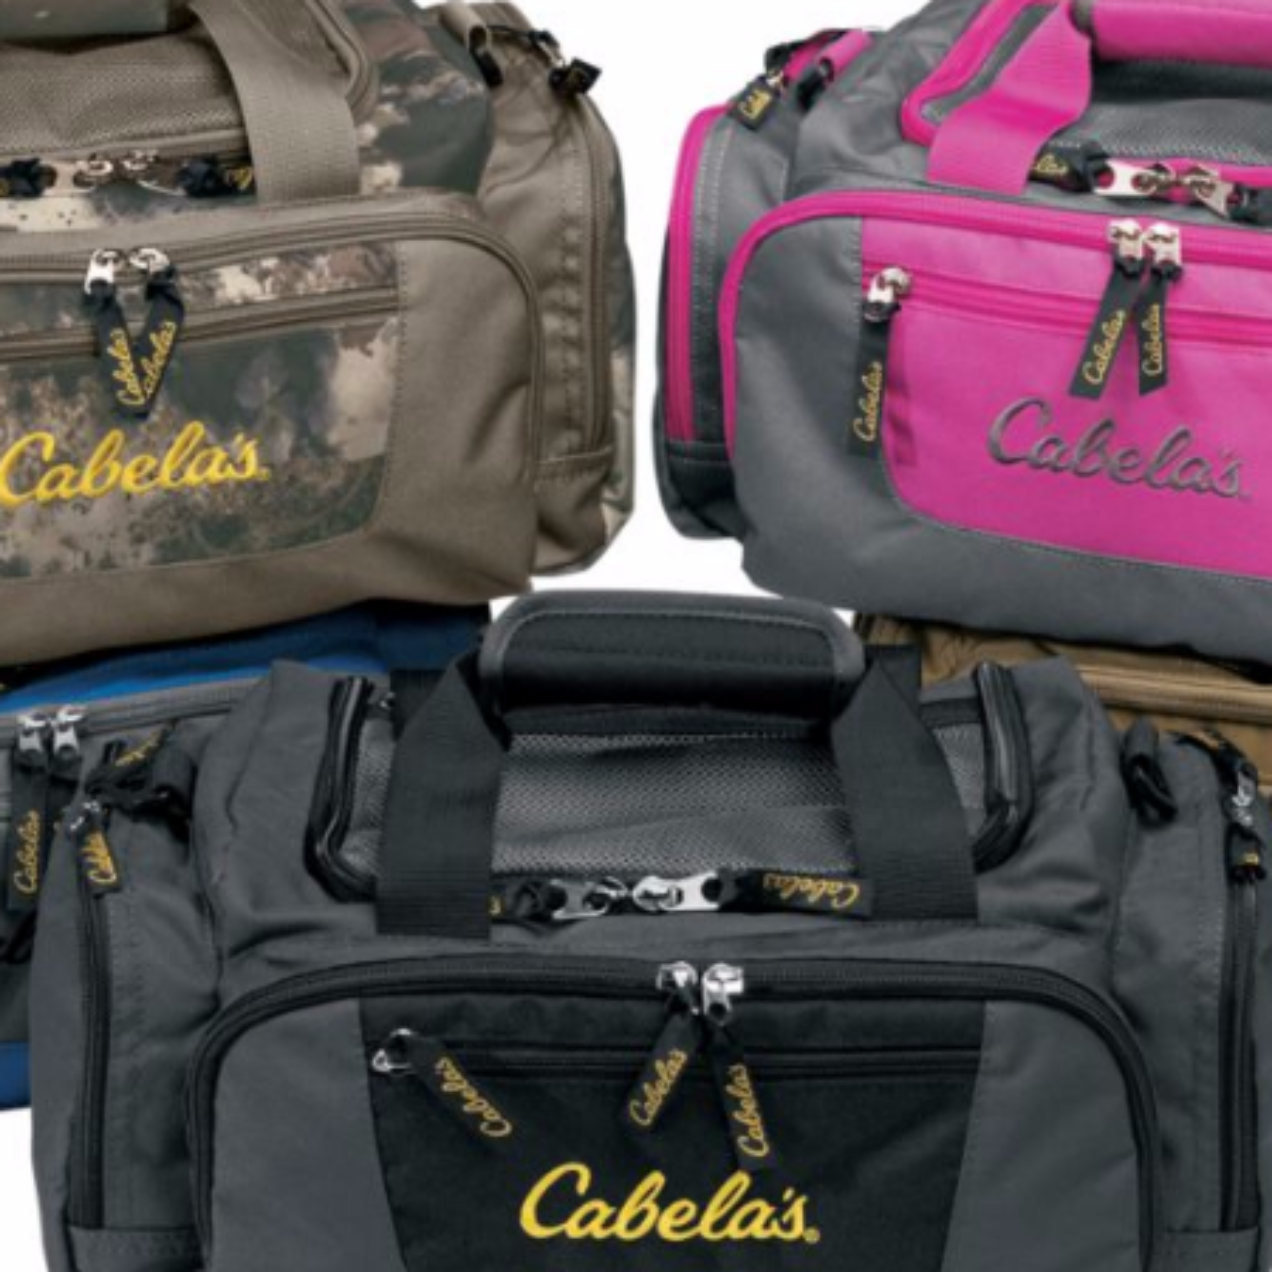 Cabela's Catch All Gear Bags Only $9.99 + Free Shipping (Regular $24.99)